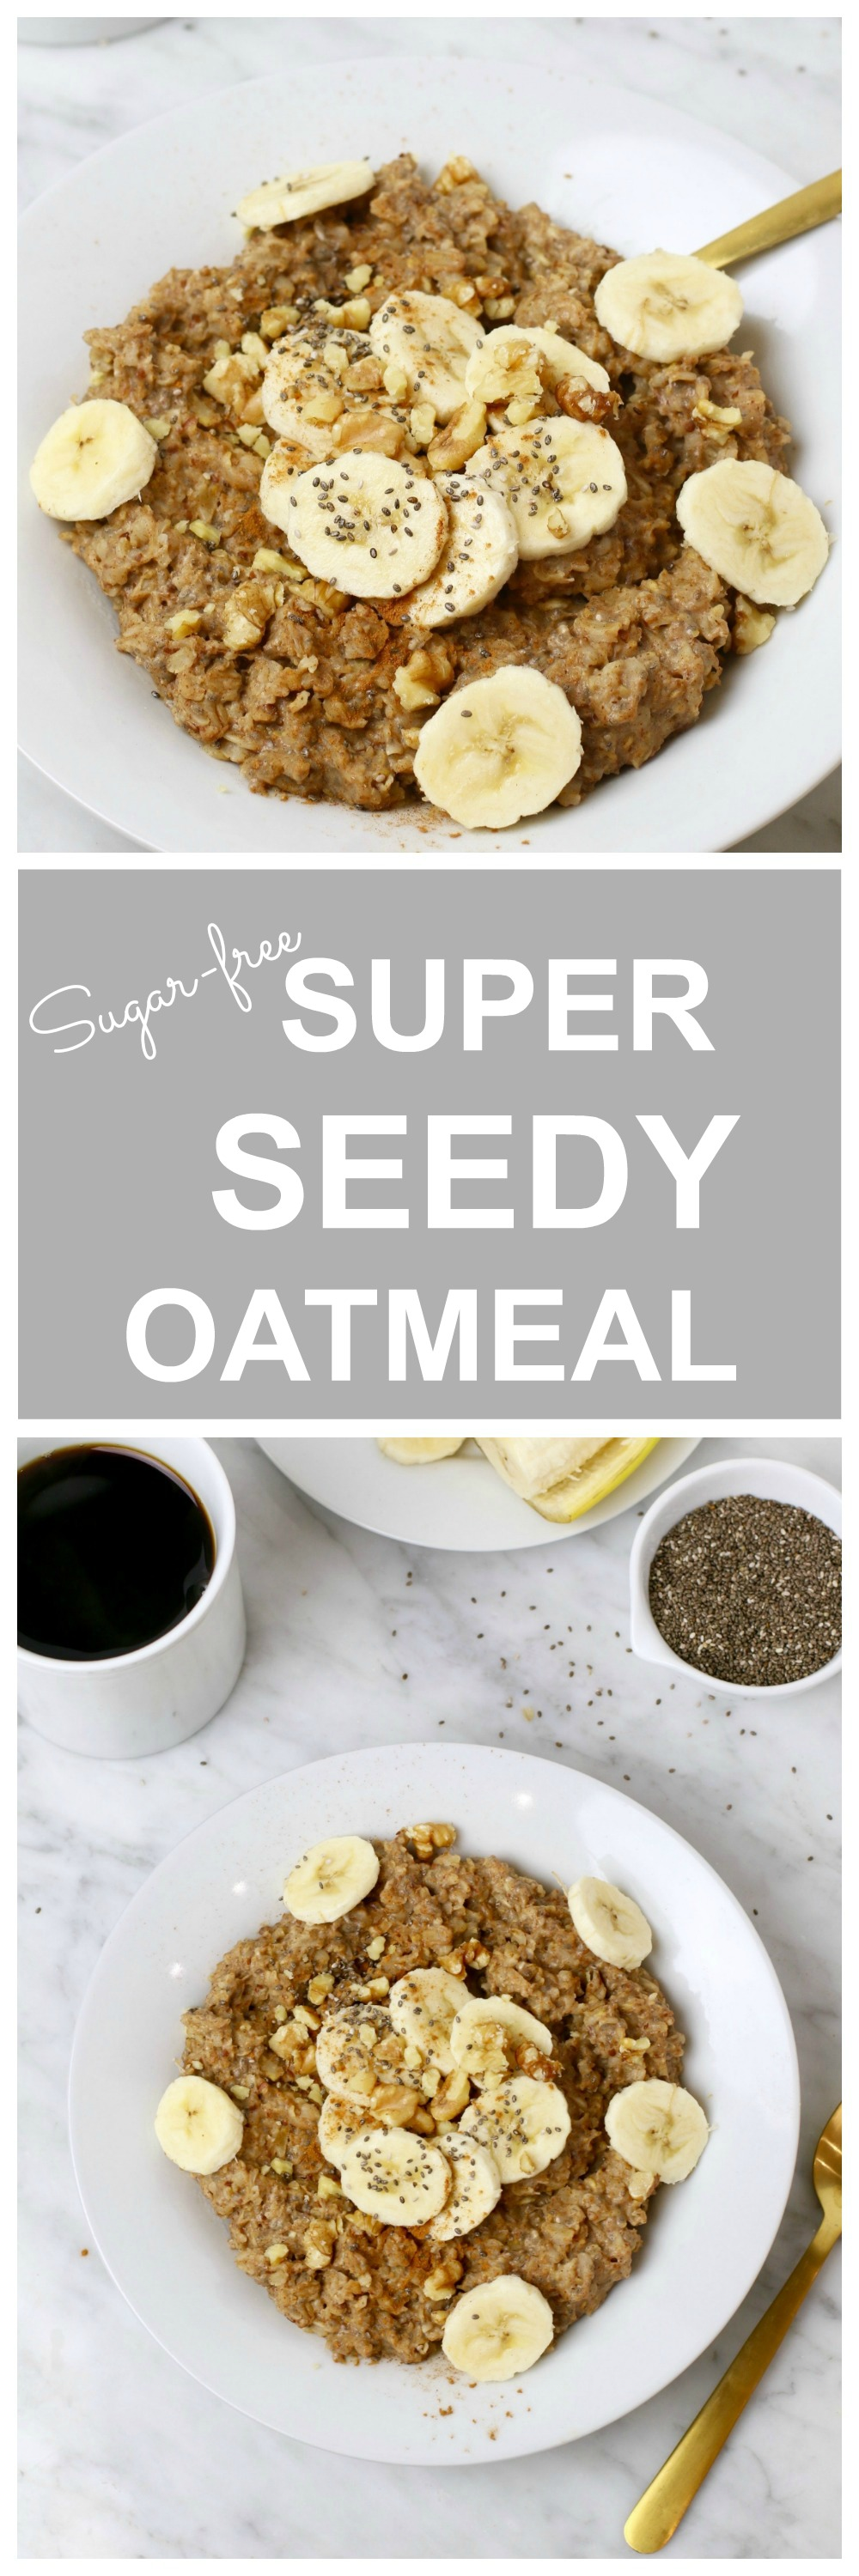 Superseed Oatmeal - sugar-free, vegan, naturally sweetened with fresh fruit and spice.